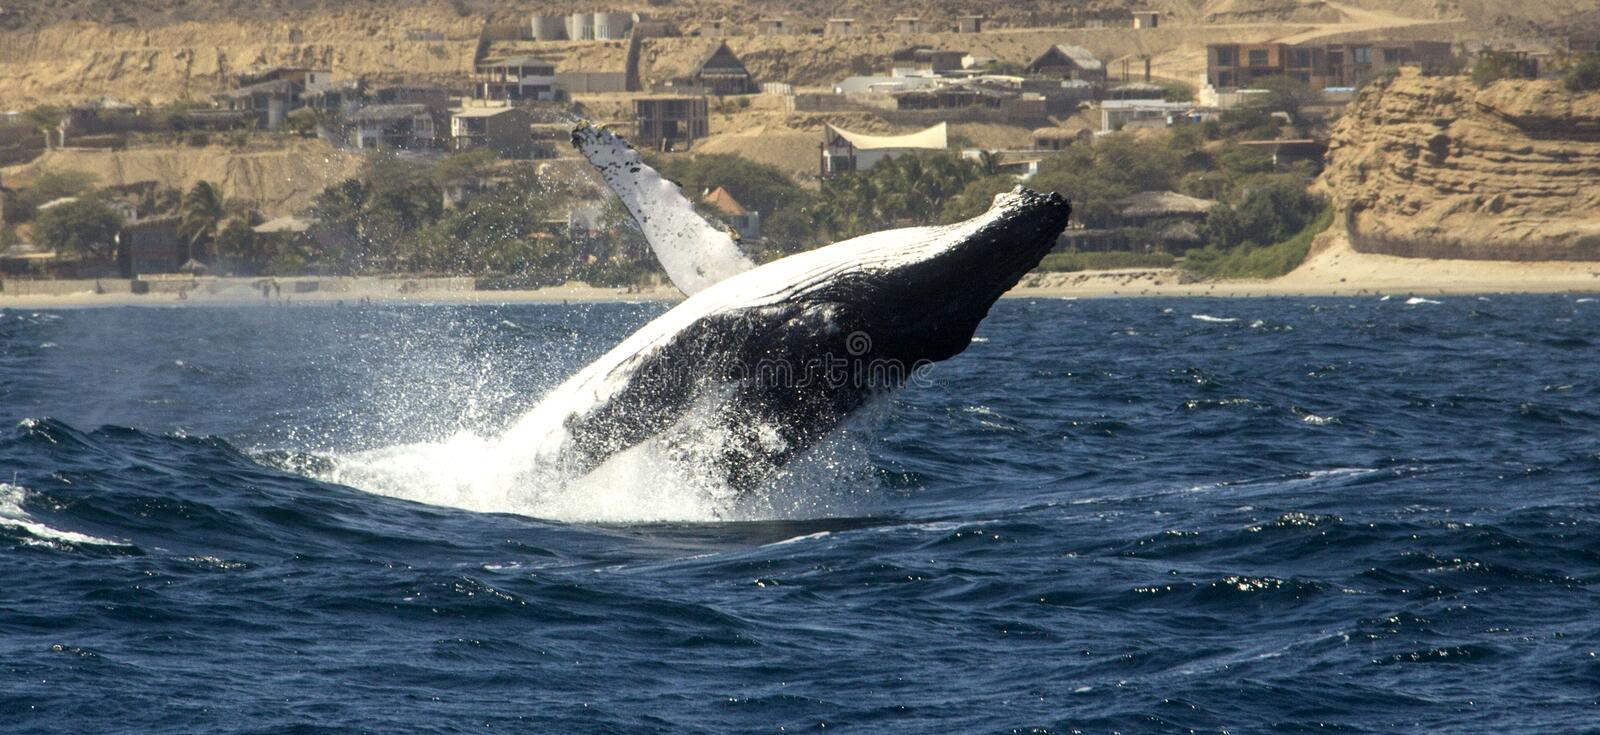 Humpback whales migration routes pacific ocean. During August, September and October you can see the amazing humpback whales migration in Mancora, Per stock photos